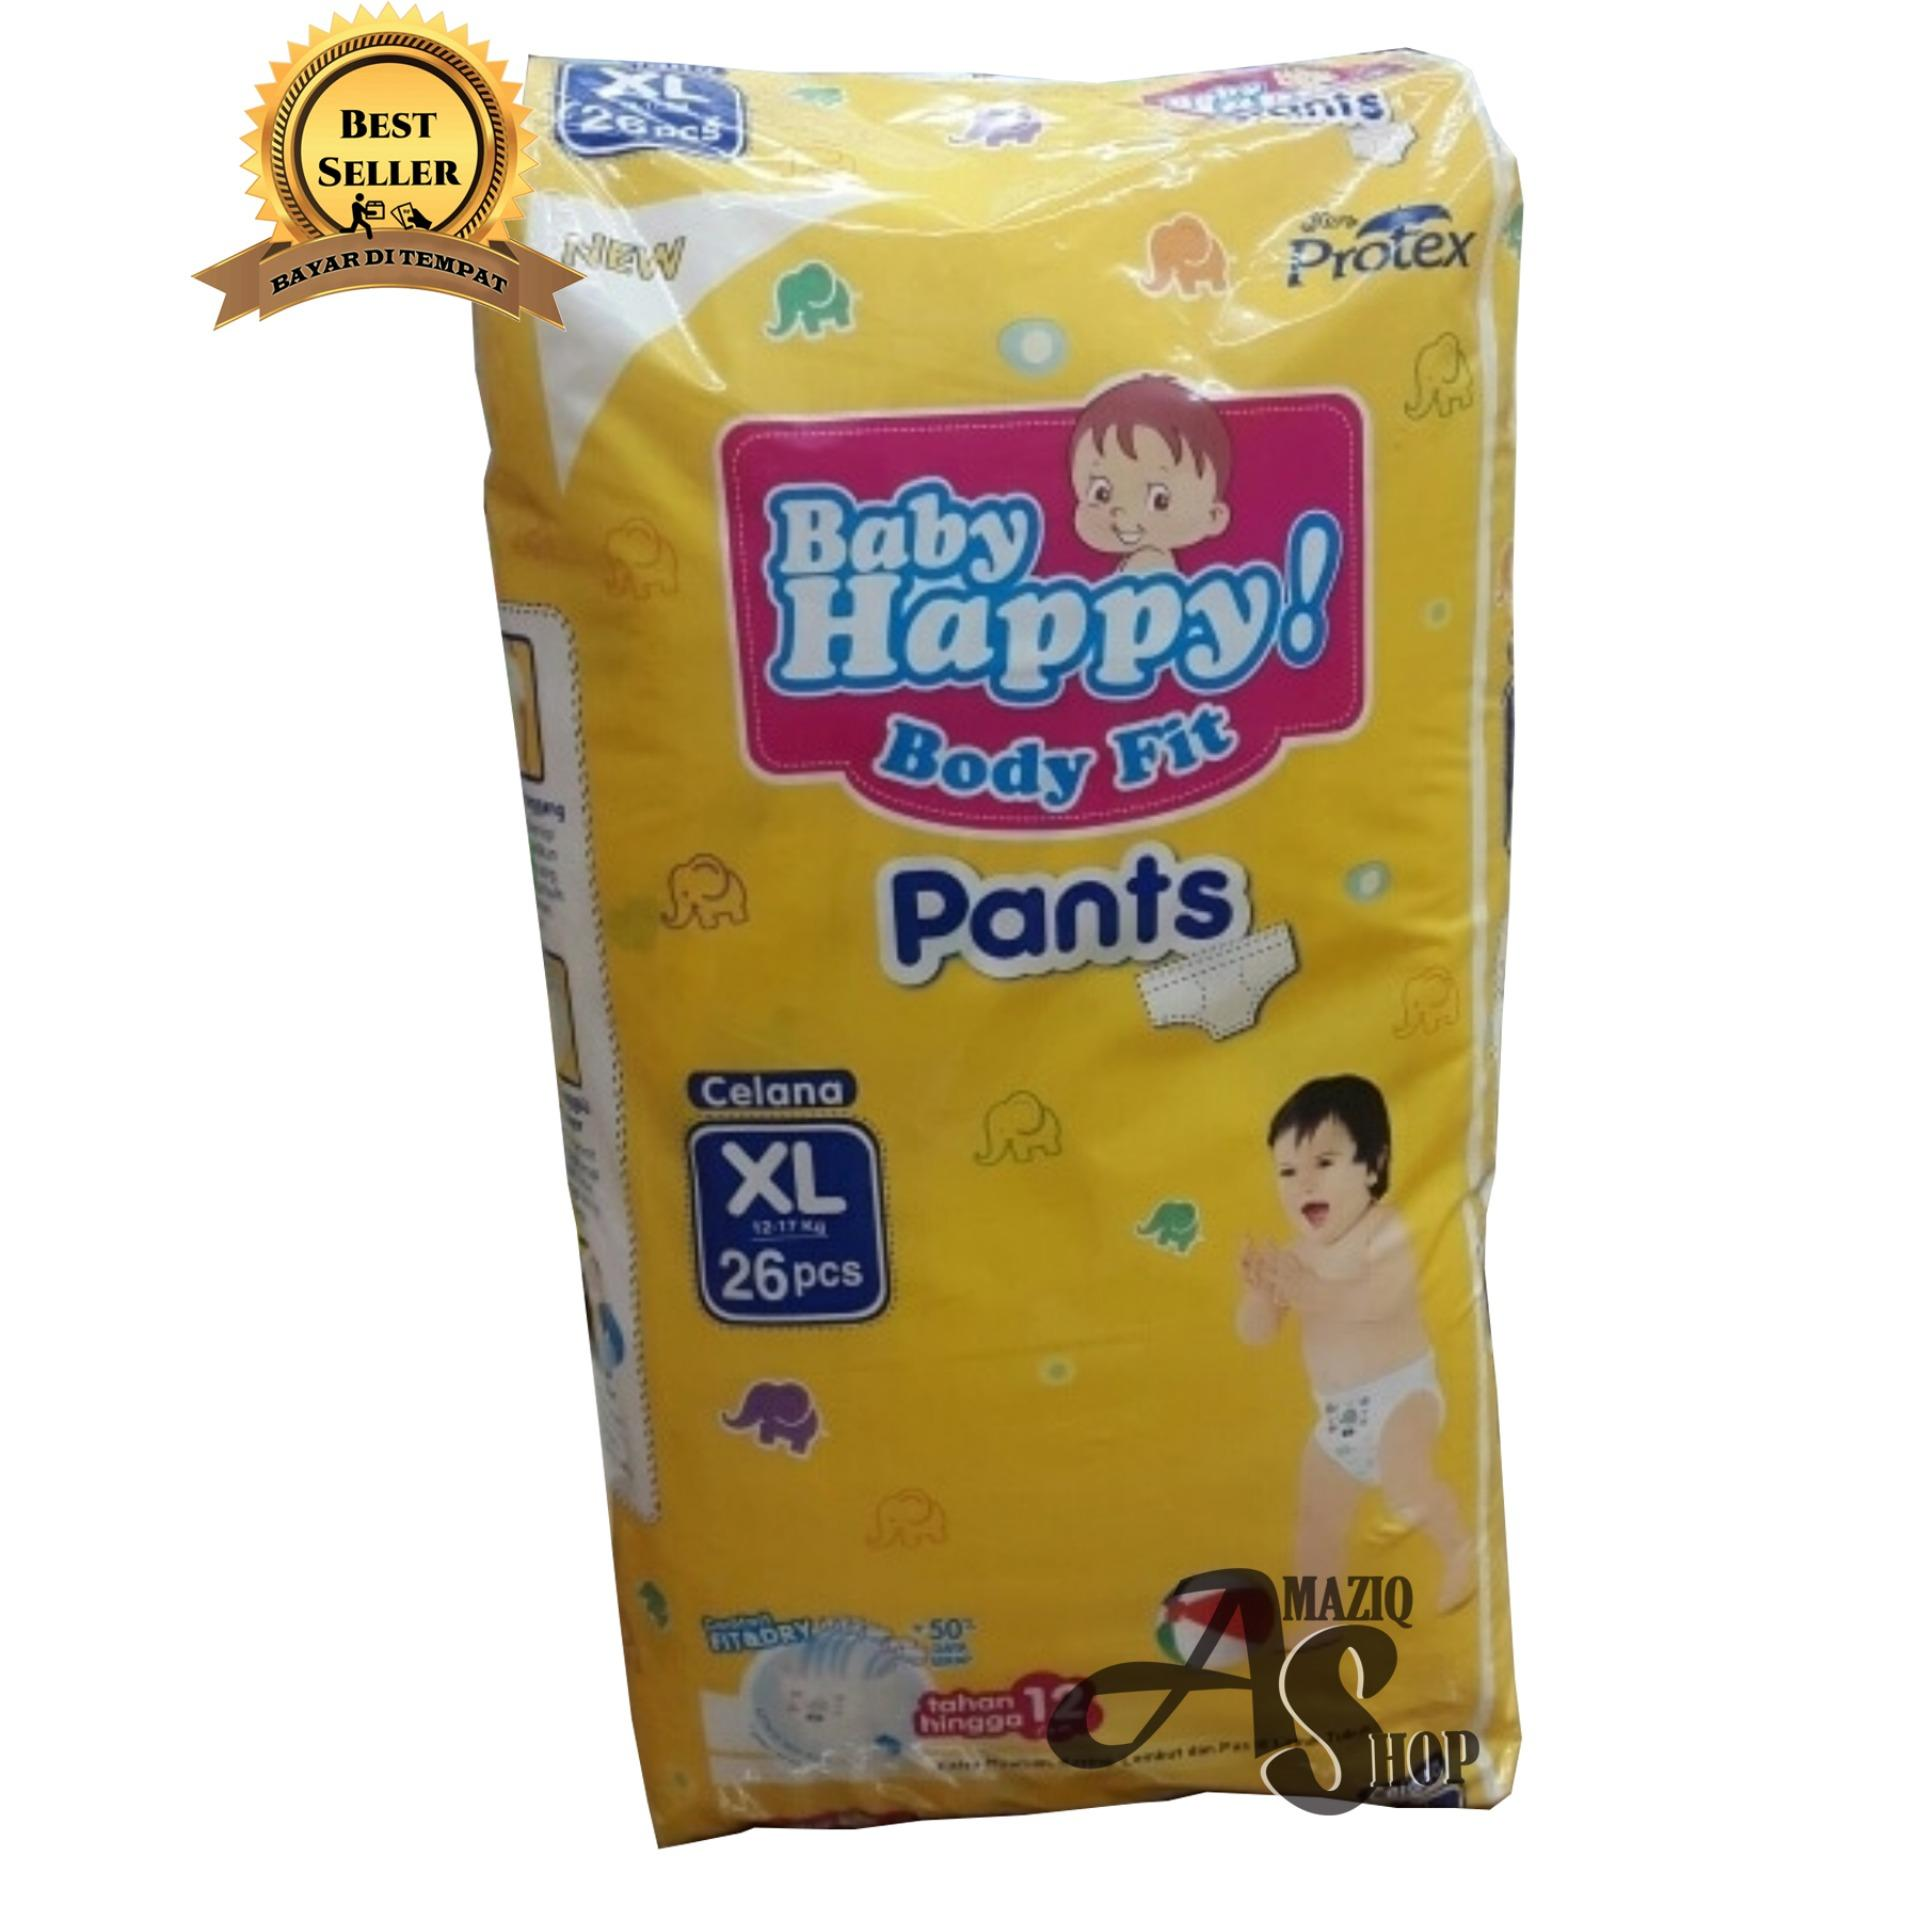 Baby Happy Body fit Pants Pack XL 26 Isi 1 Pack .